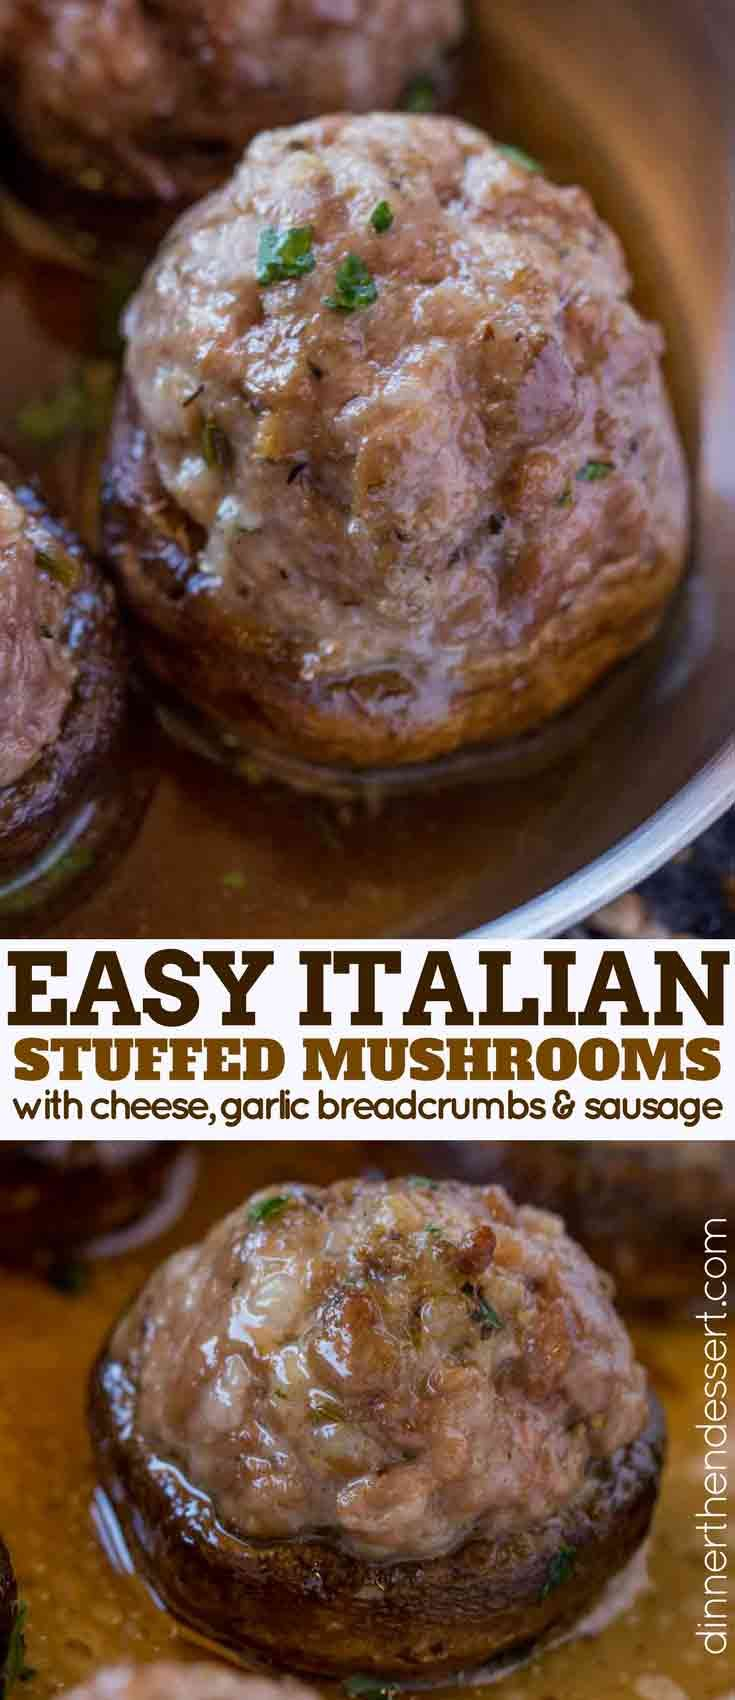 Easy Sausage Stuffed Mushrooms made with pork sausage, parmesan cheese, garlic and breadcrumbs are a restaurant favorite made at home in 15 minutes. A perfect Italian appetizer with no fuss.